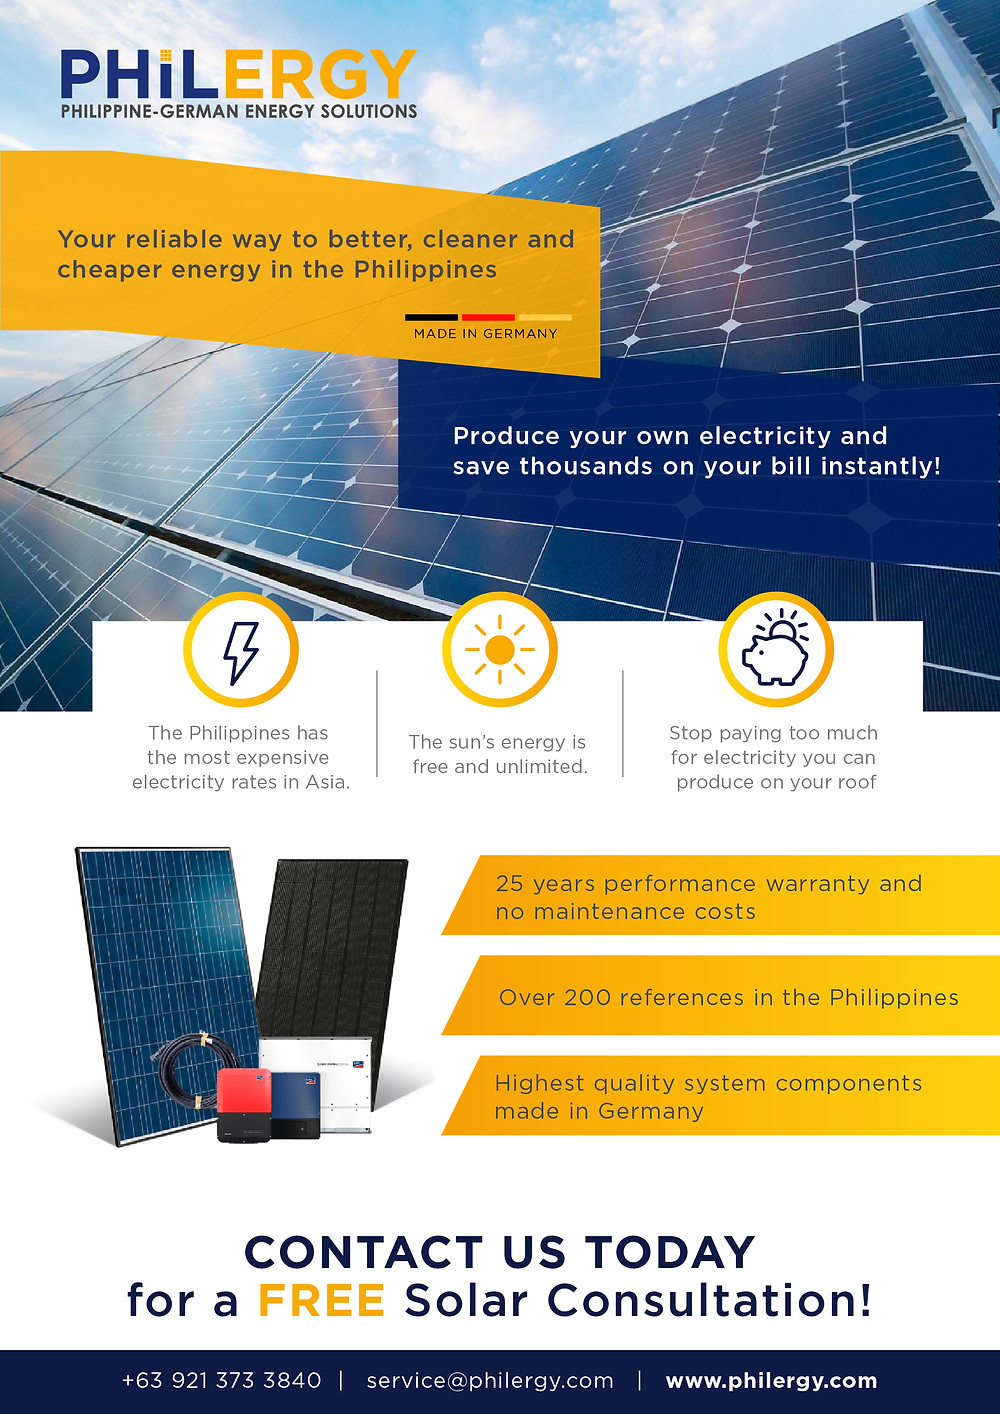 PHILERGY German Solar for homes and businesses  - High quality complete solar power installer and top rated panel packages for residential, commercial and industrial roofs in the Philippines